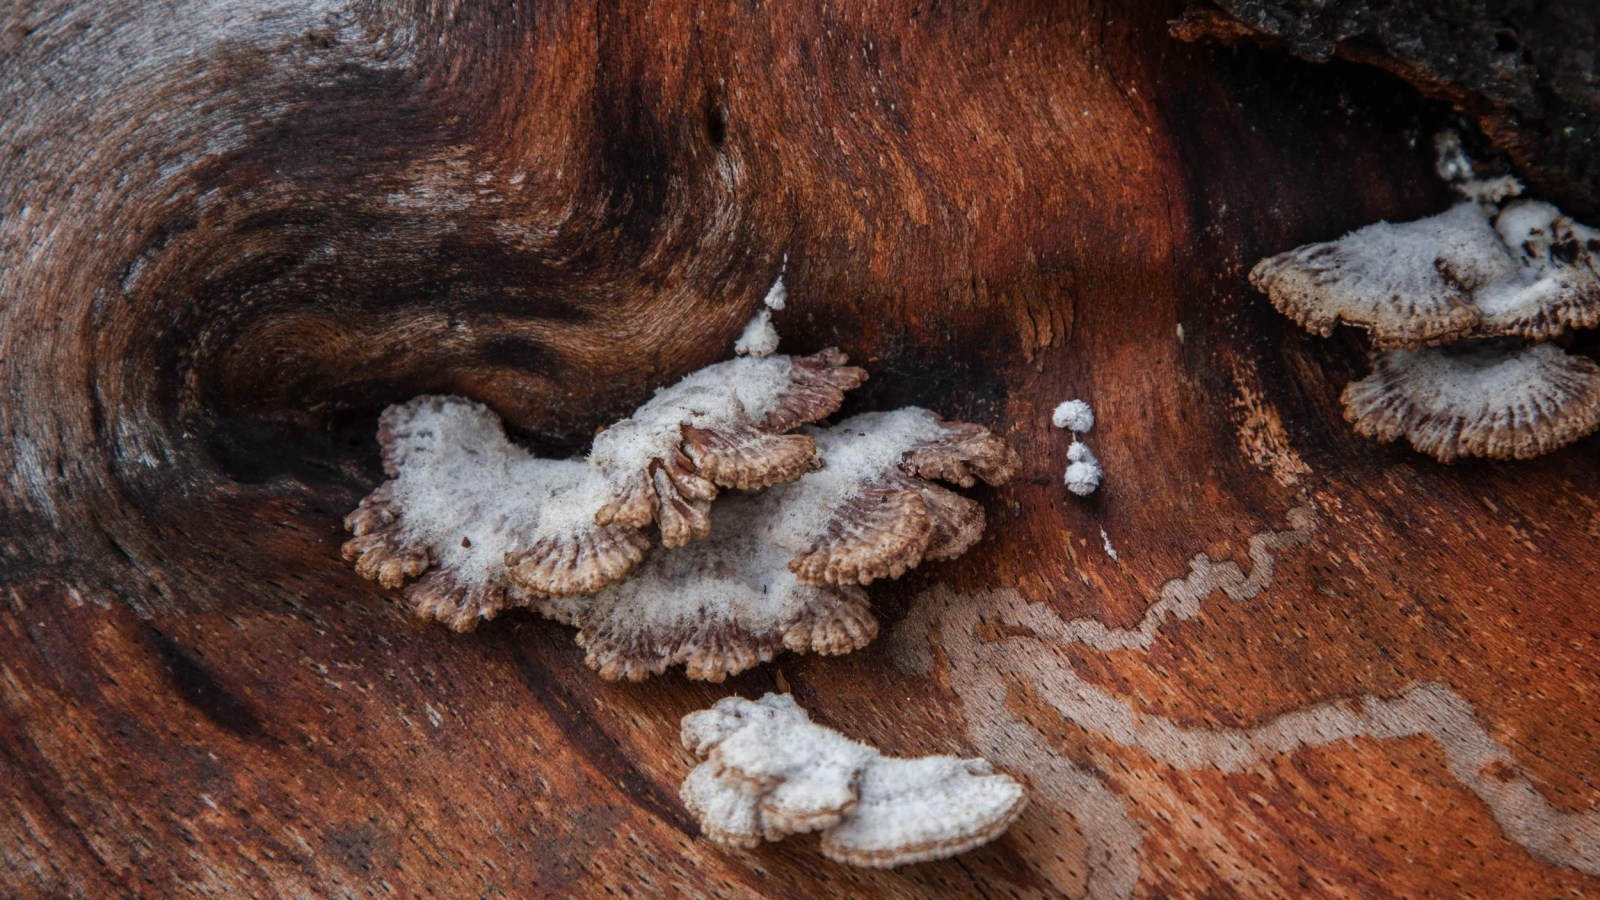 Close-up of mushrooms, beech.